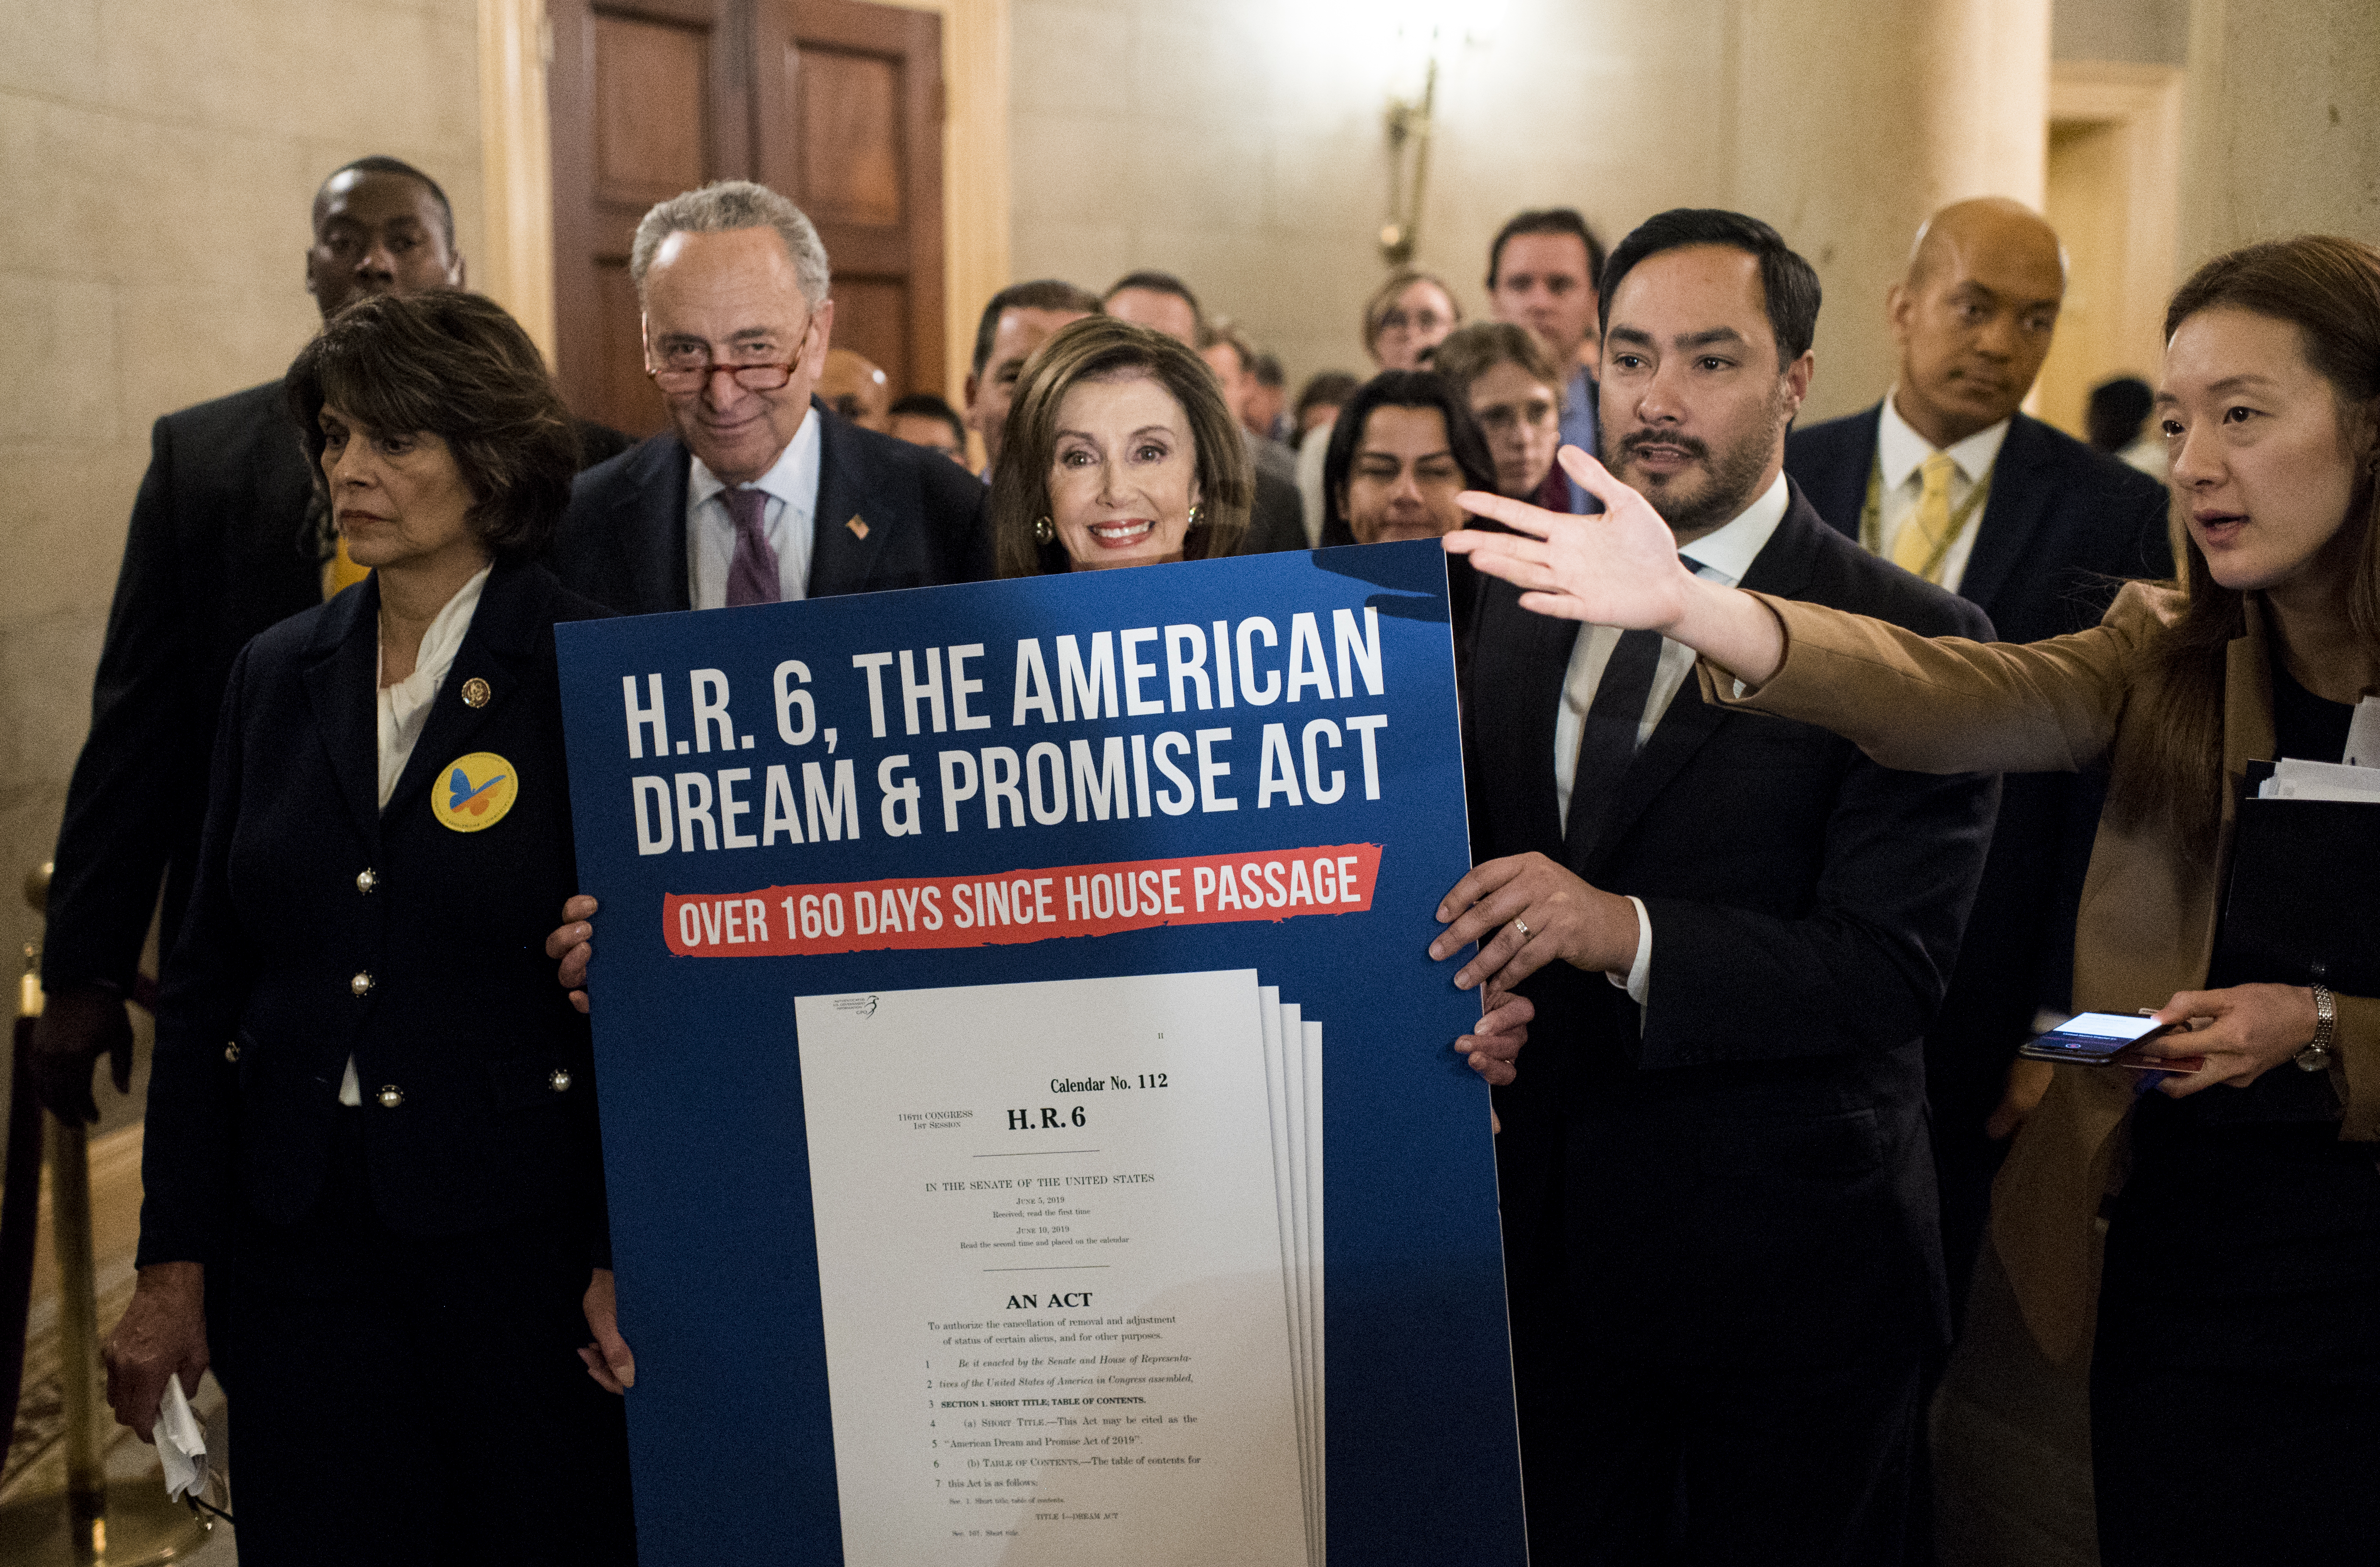 UNITED STATES - NOVEMBER 12: From left, Rep. Lucille Roybal-Allard, D-Calif., Senate Minority Leader Chuck Schumer, D-N.Y., Speaker of the House Nancy Pelosi, D-Calif., and Rep. Joaquin Castro, D-Texas, march to Senate Majority Leader Mitch McConnell's office in the Capitol to deliver a poster of the American Dream and Promise Act on Tuesday, Nov. 12, 2019. The march from the House side of the Capitol followed Democrats' press conference on the Supreme Court's oral arguments on the Trump administration's decision to end the Deferred Action for Childhood Arrivals programearlier in the day. (Photo By Bill Clark/CQ Roll Call)